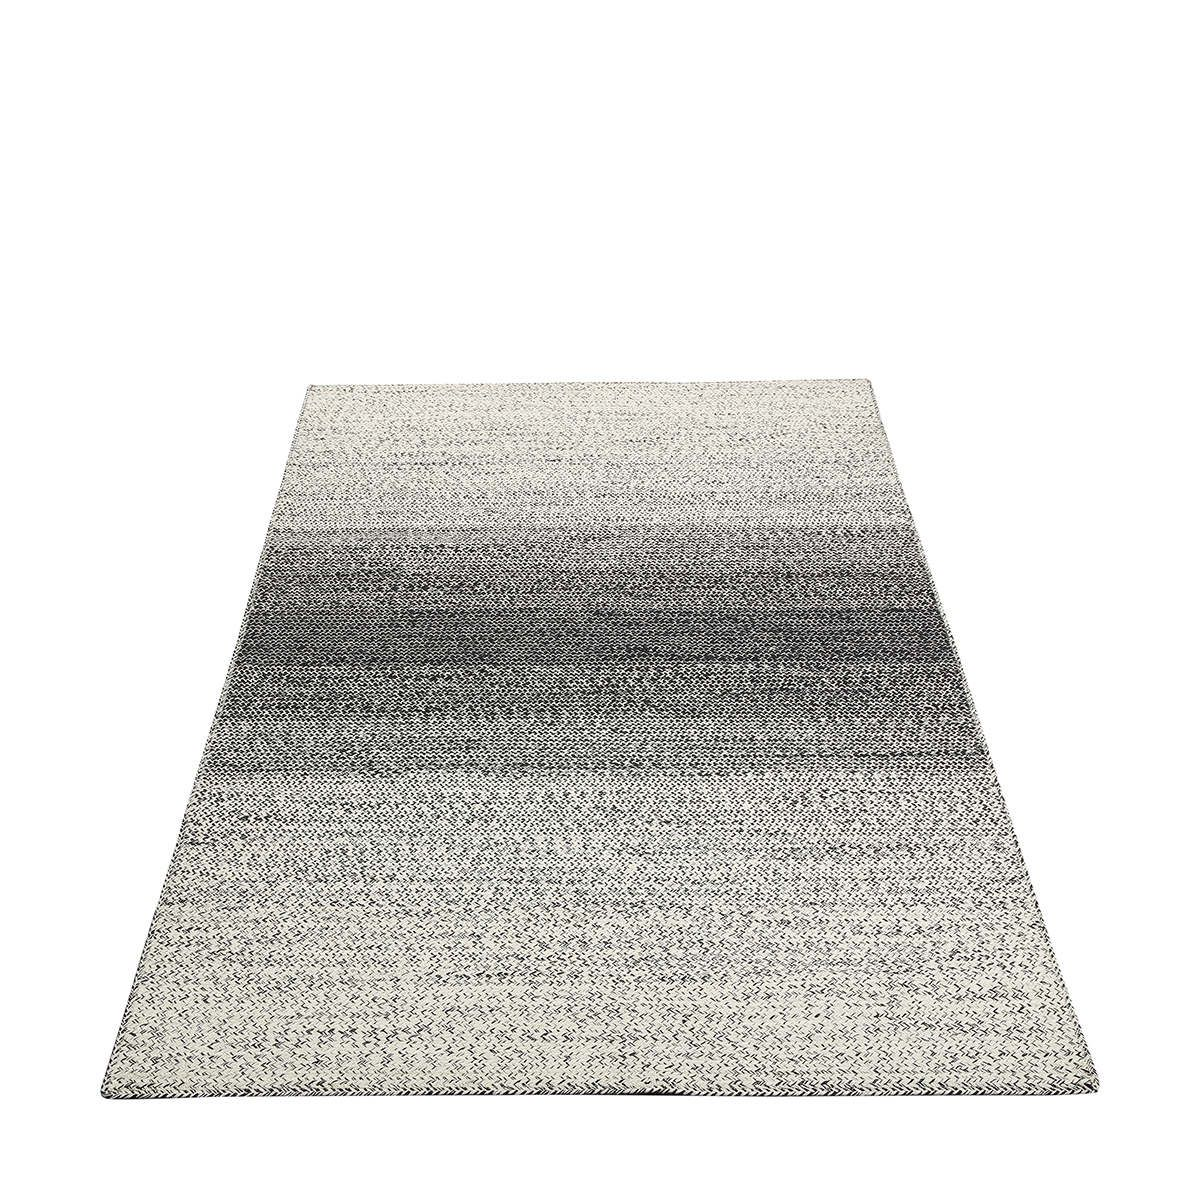 Large Ombre Rug Kmart With Images Ombre Rug Large Rugs Rugs